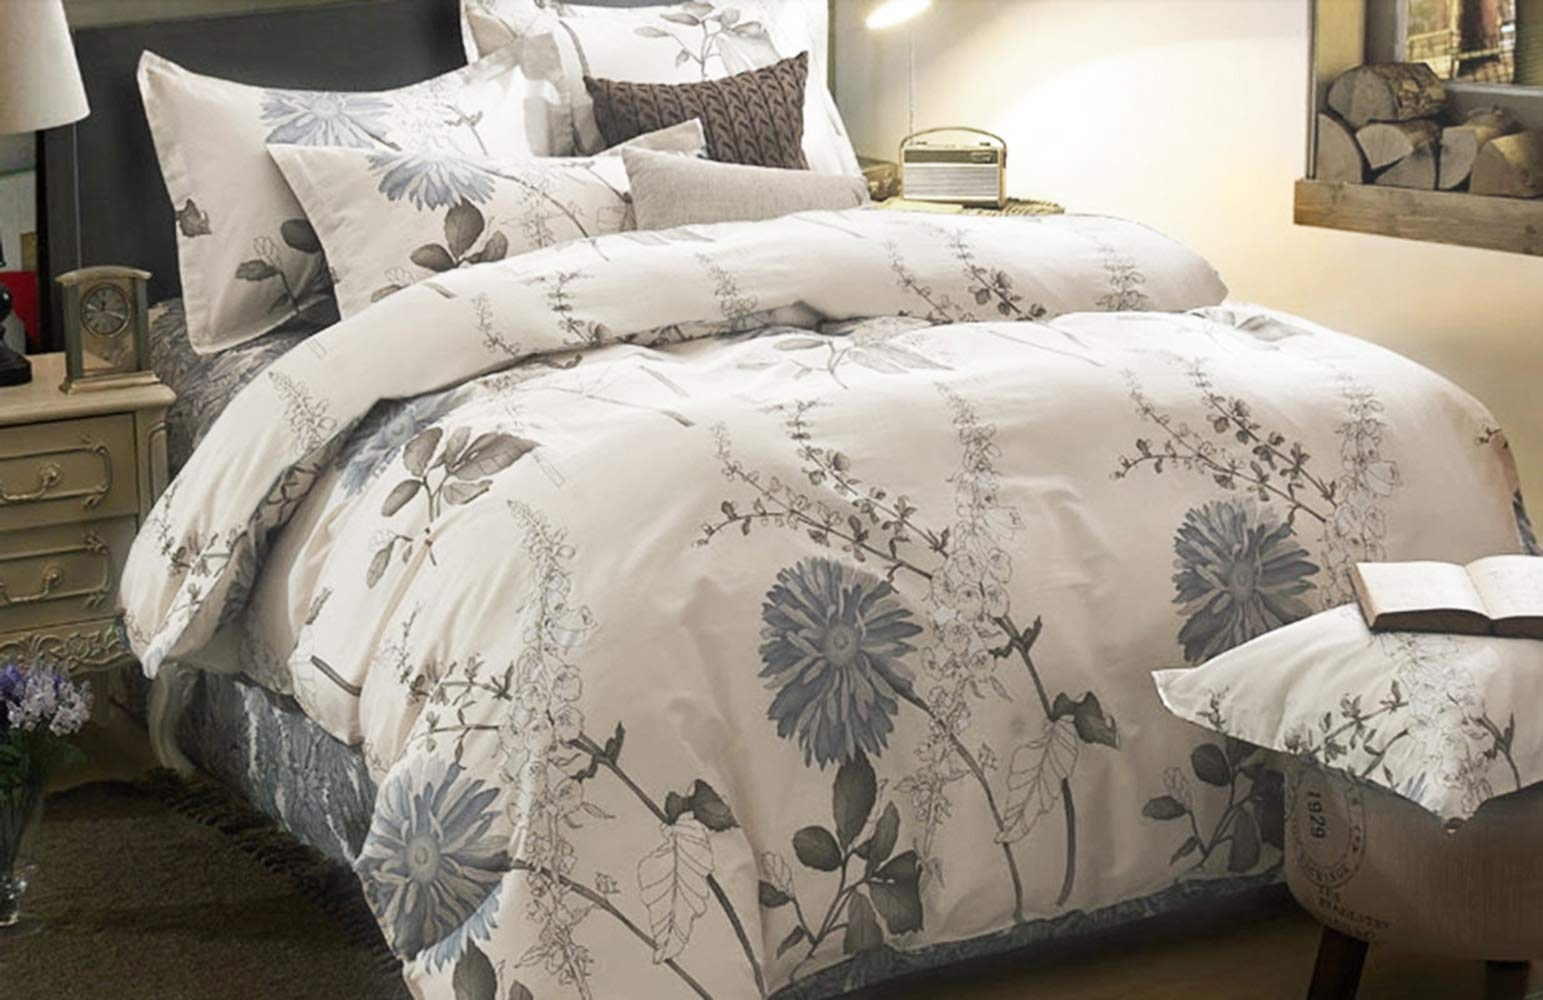 Wake In Cloud - Floral Comforter Set, Botanical Flowers Pattern Printed, 100% Cotton Fabric with Soft Microfiber Inner Fill Bedding (3pcs, Queen Size) - 【Design】Elegant botanical floral pattern print. Simple modern gift for teens, boys, girls, men or women. 【Set】1 comforter 90x90 inches (queen size), 2 pillow cases 20x26 inches. For extra pillow cases, please search B07GSQT8DJ. 【Material】100% cotton outer fabric with ultra soft microfiber inner fill. Durable, breathable, hypoallergenic, fade-resistant and machine washable. - comforter-sets, bedroom-sheets-comforters, bedroom - 71huCZvCbZL -